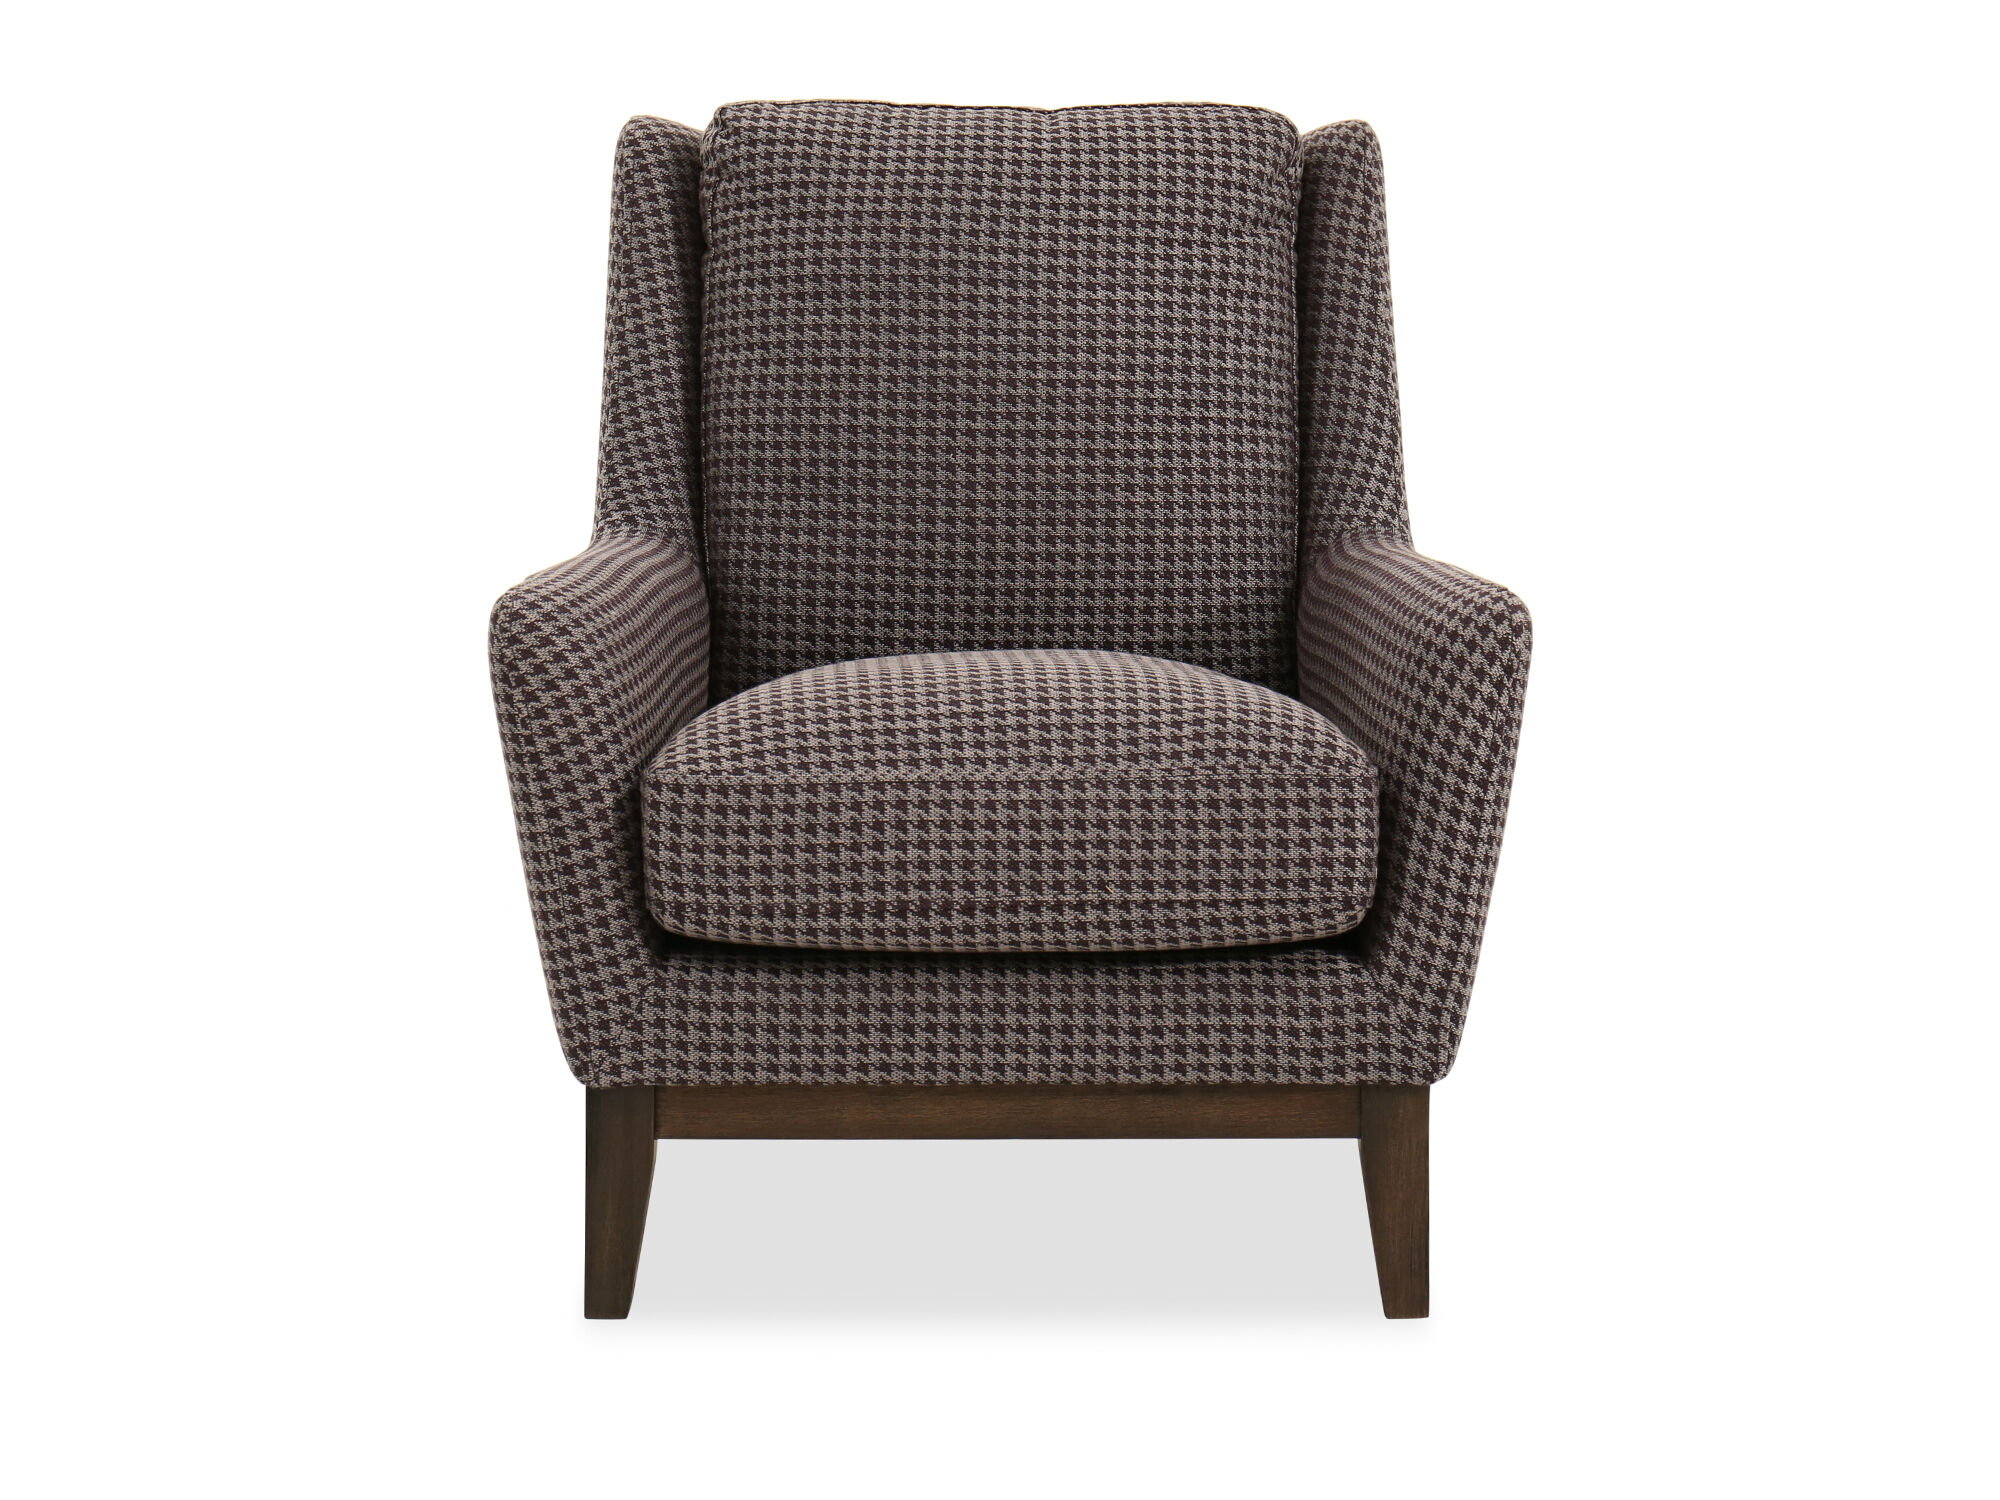 patterned living room chairs how to tie a person chair houndstooth casual 33 quot in brown mathis